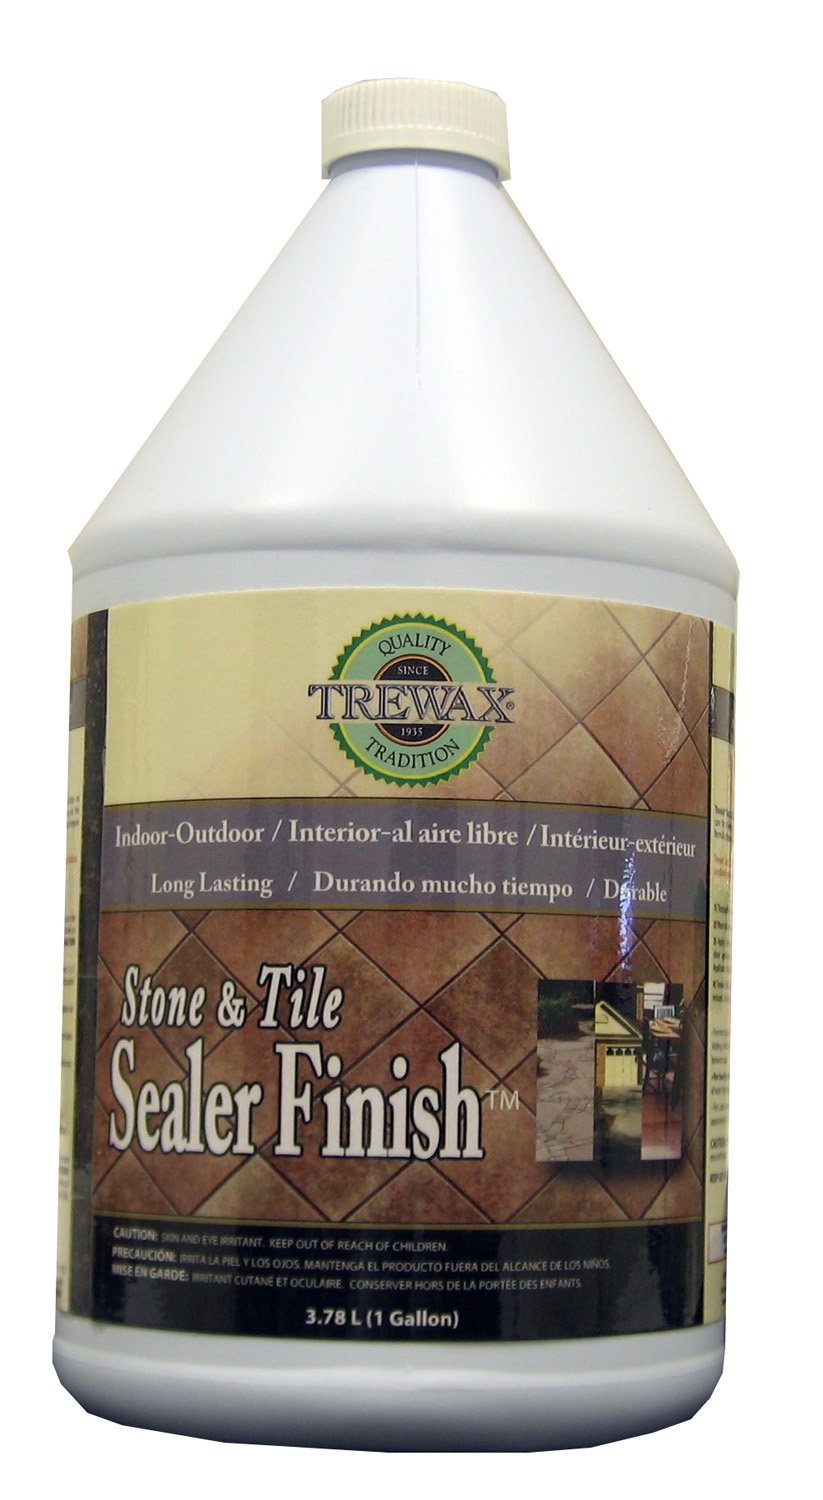 Trewax Professional Stone and Tile Indoor and Outdoor Sealer Finish, 1-Gallon